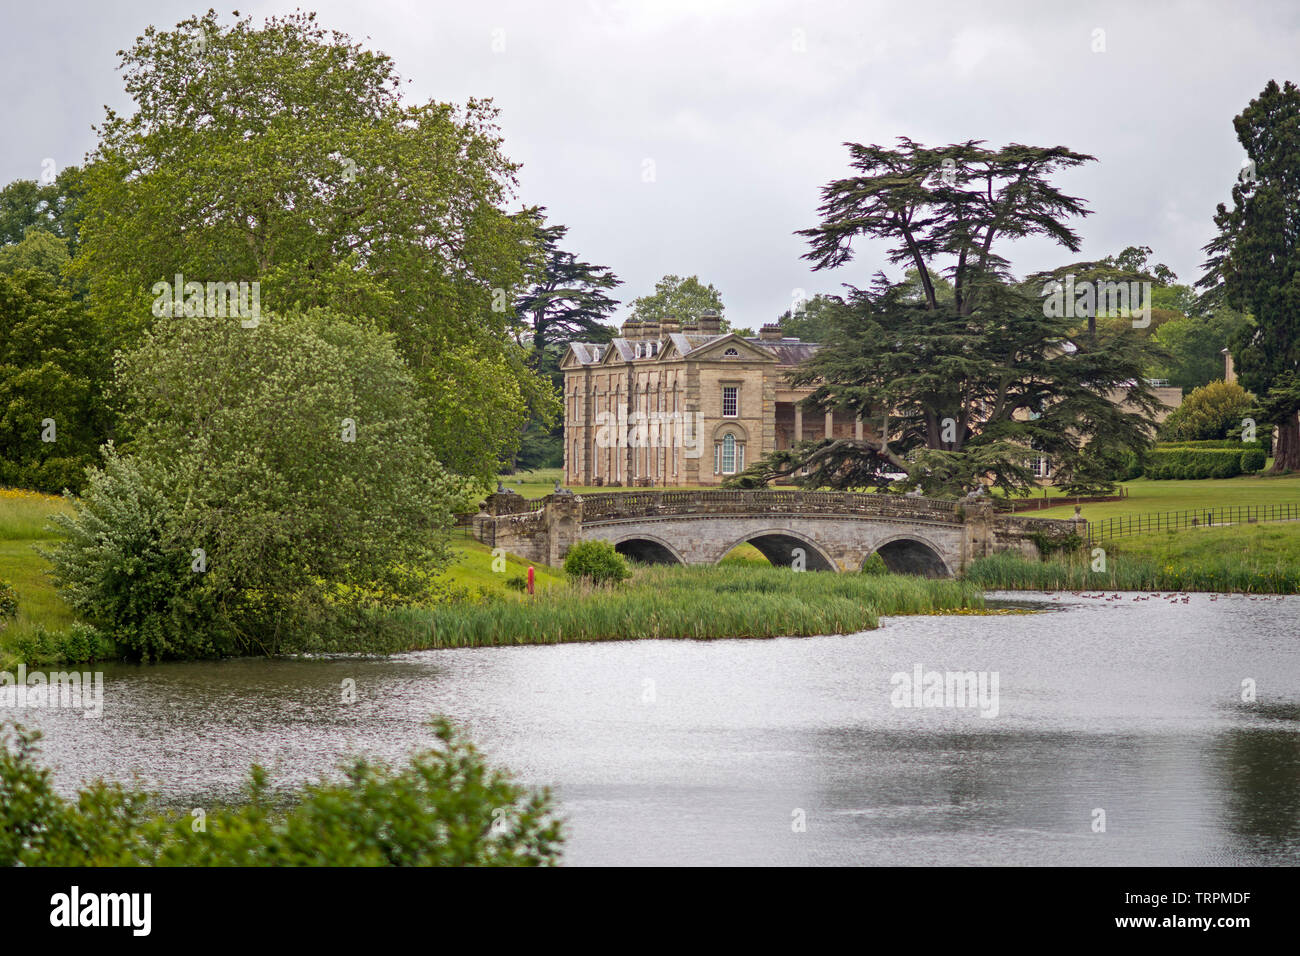 Upper Bridge by the Georgian mansion house at Compton Verney, Warwickshire, UK. 10.06.19. - Stock Image